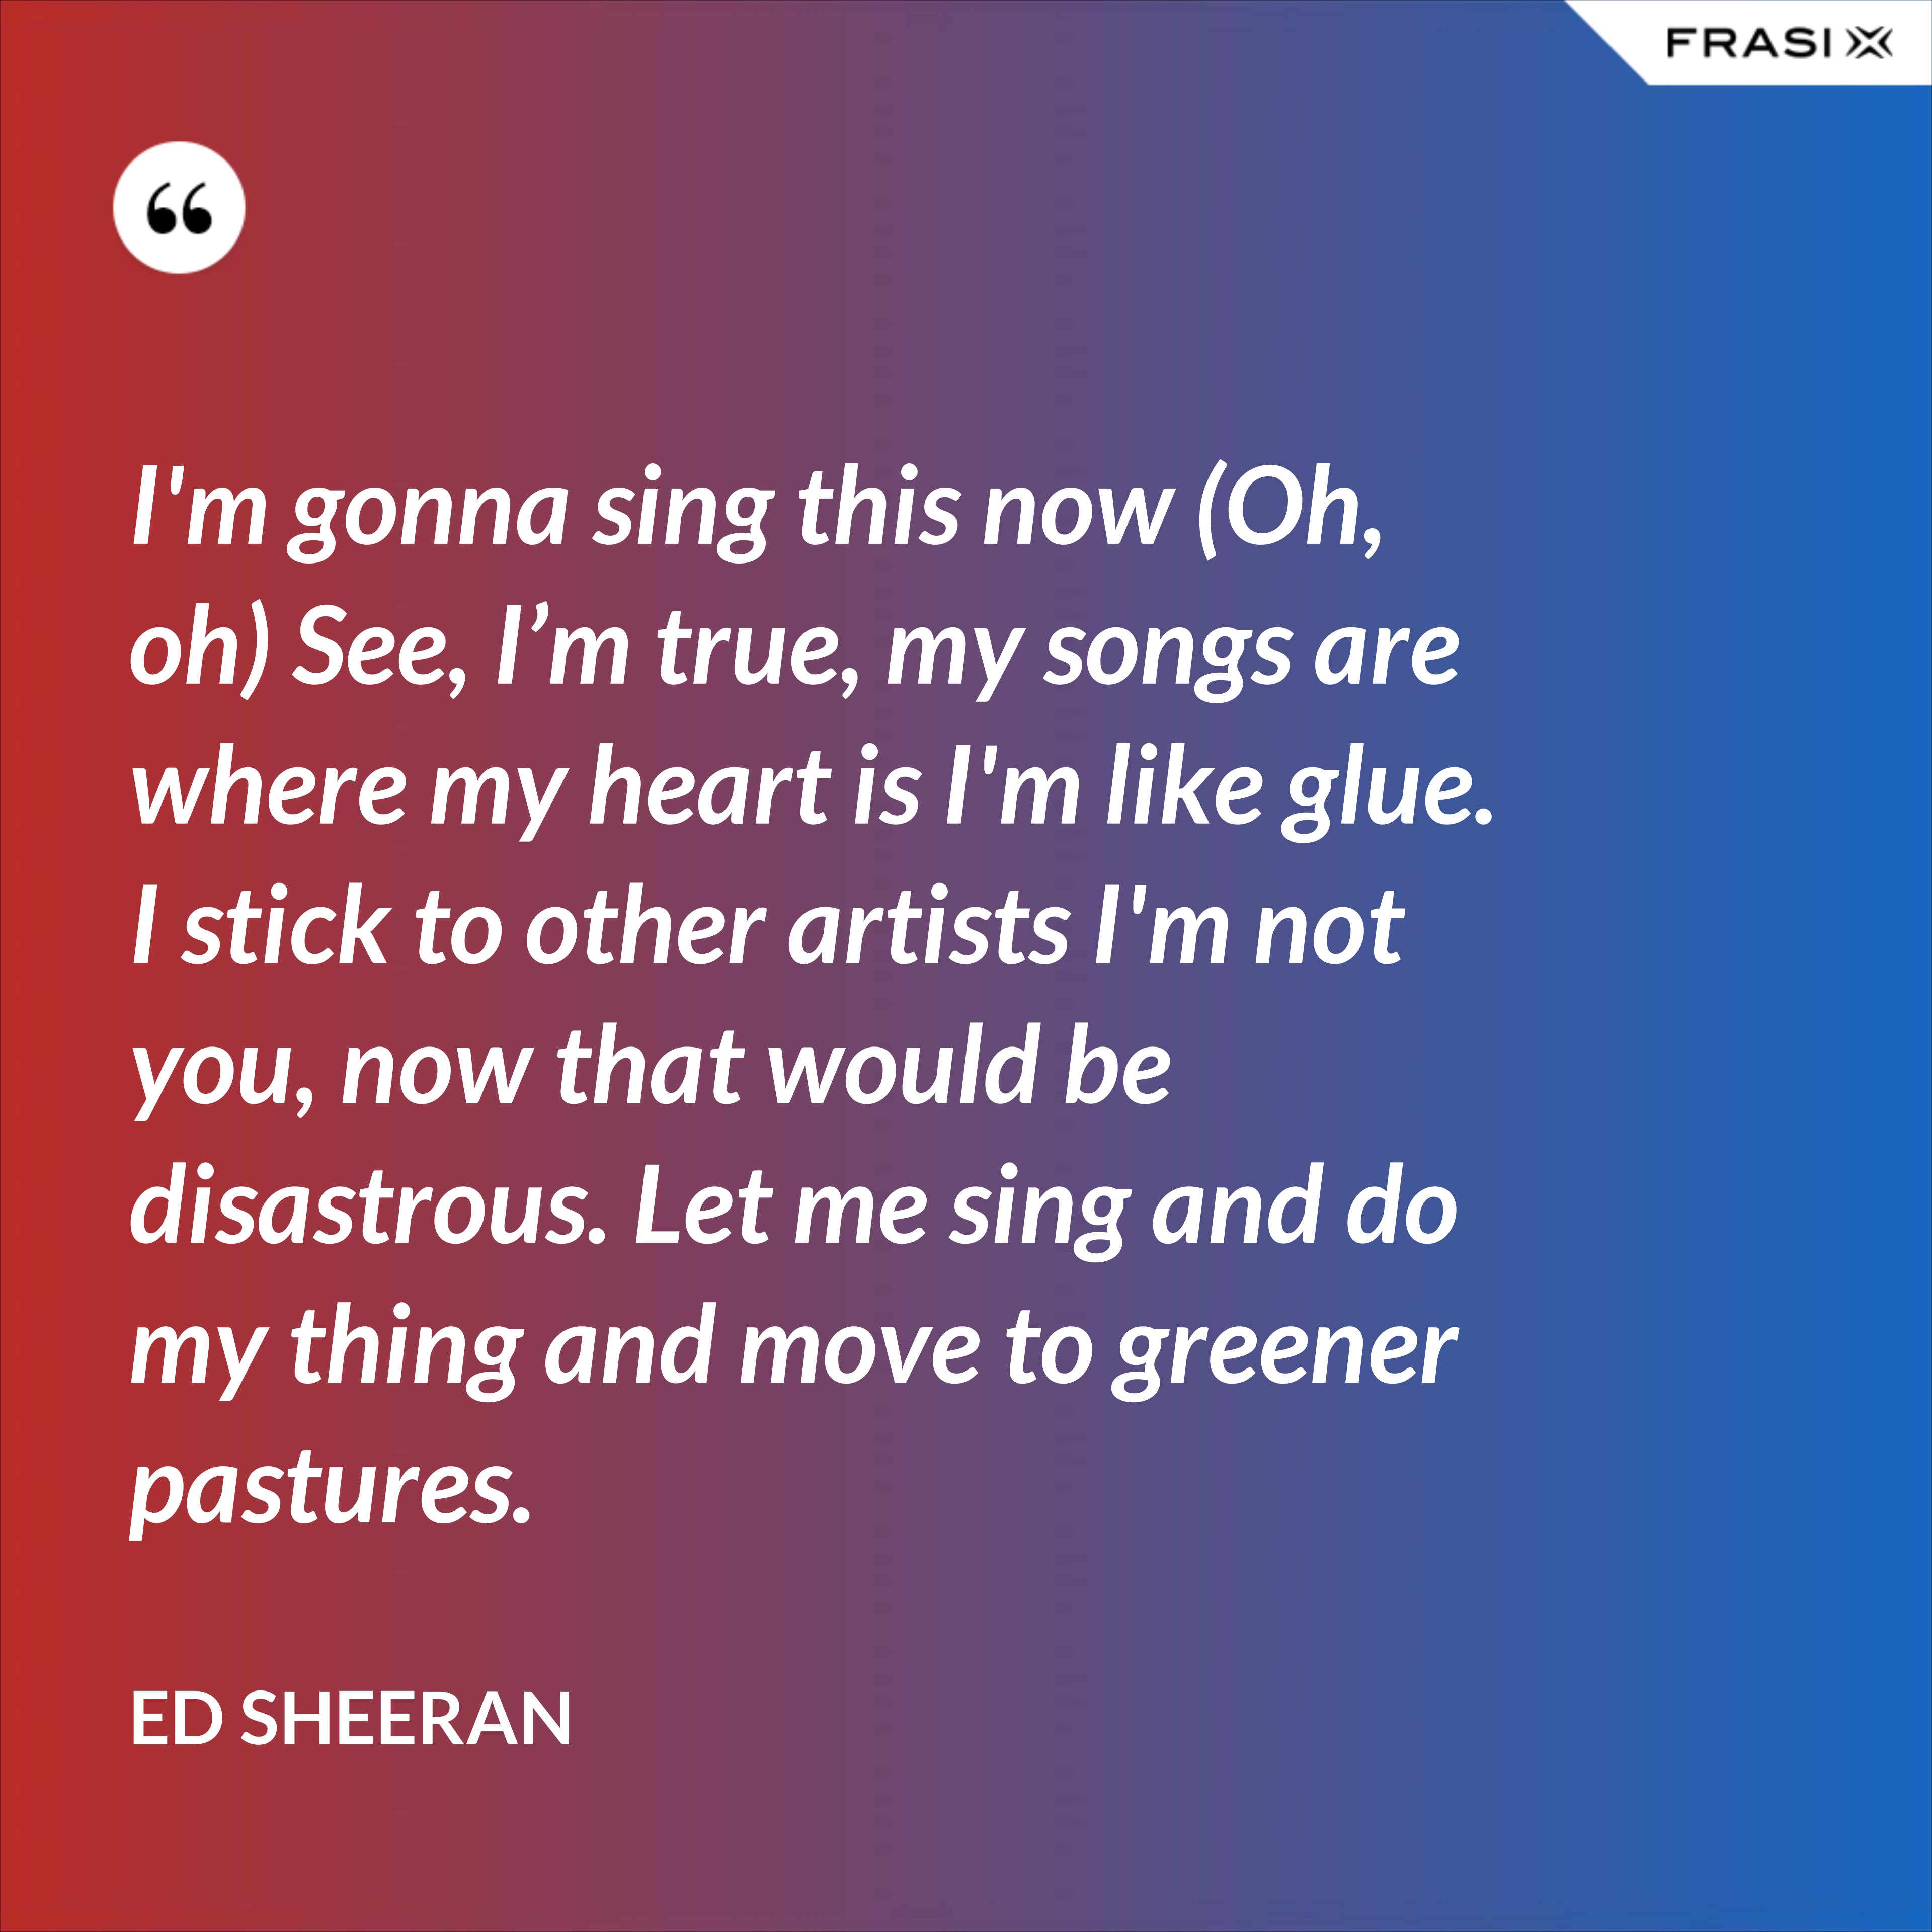 I'm gonna sing this now (Oh, oh) See, I'm true, my songs are where my heart is I'm like glue. I stick to other artists I'm not you, now that would be disastrous. Let me sing and do my thing and move to greener pastures. - Ed Sheeran